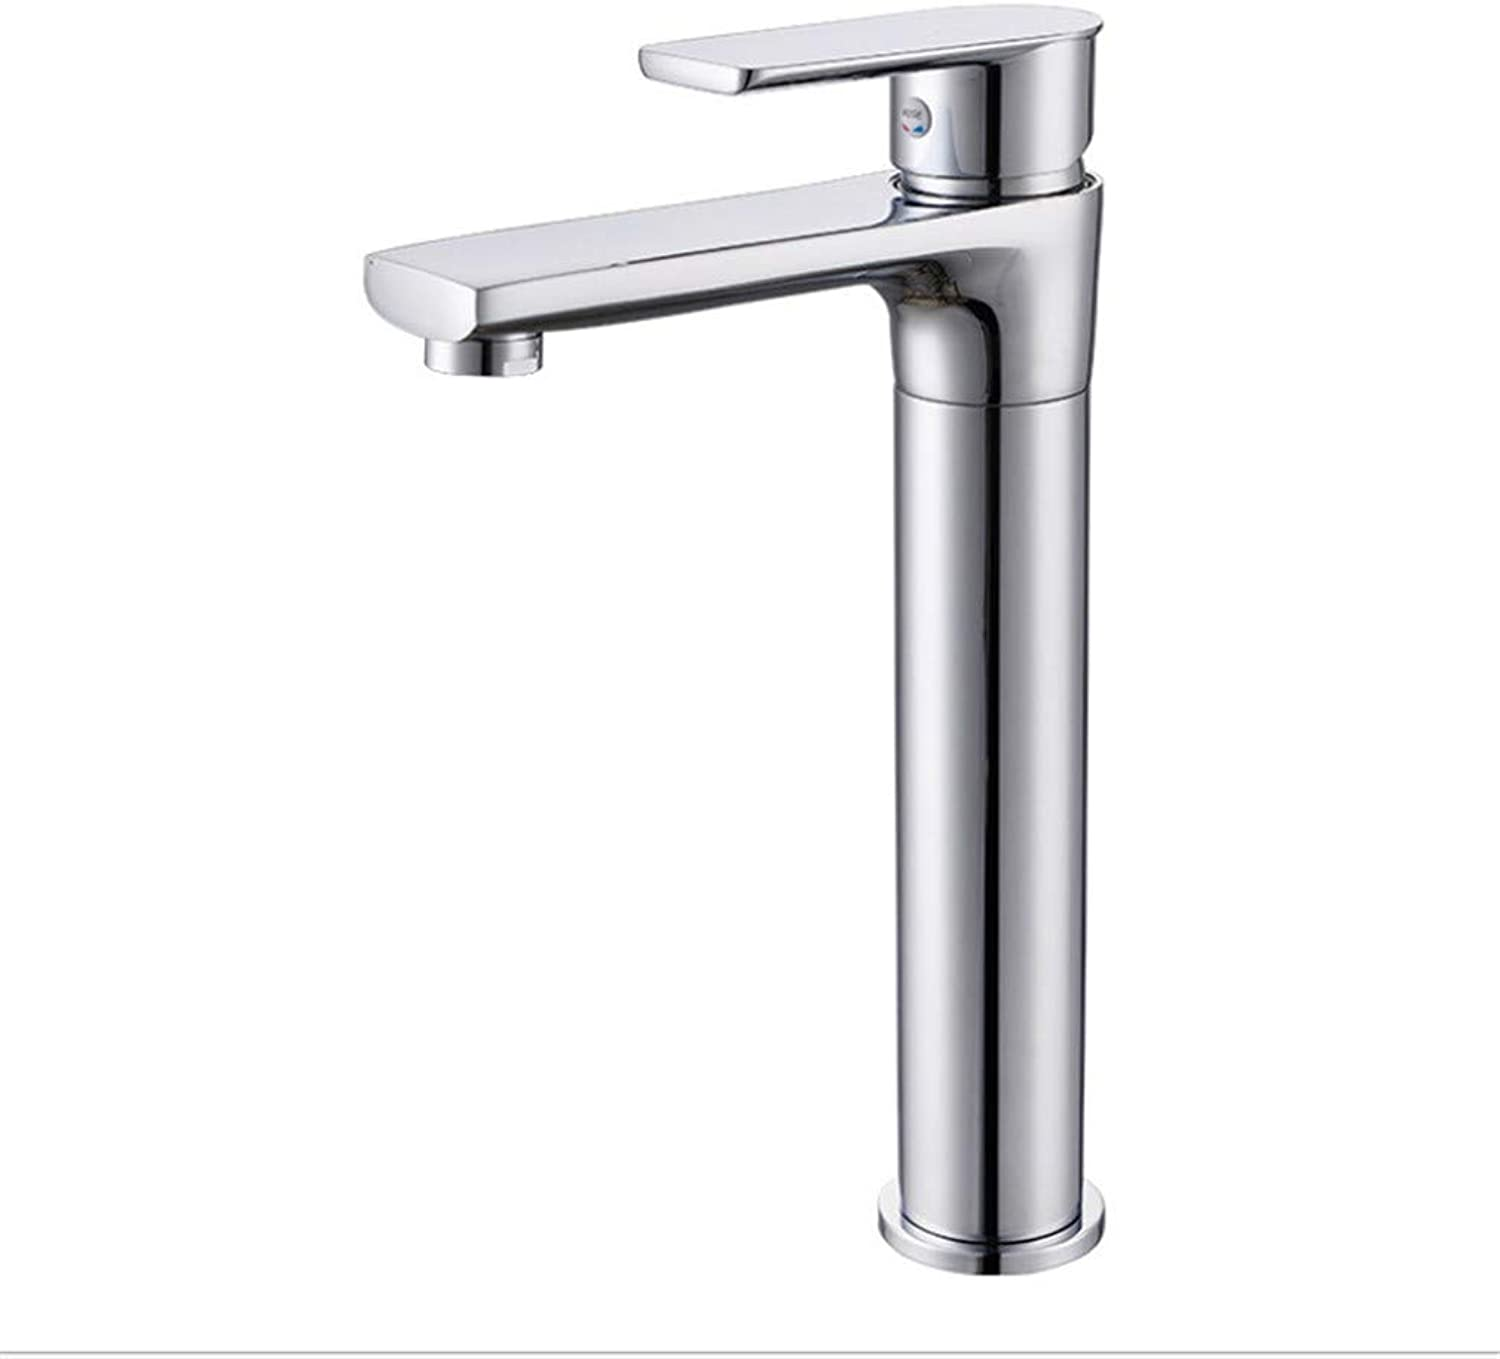 Bathroom Taps Basin Tap Taps for Bathroom Sinkadd and Cast Copper Washbasin, Faucet, Faucet, Hot and Cold Bathroom, Basin, Single Mixing, Mixing Faucet.